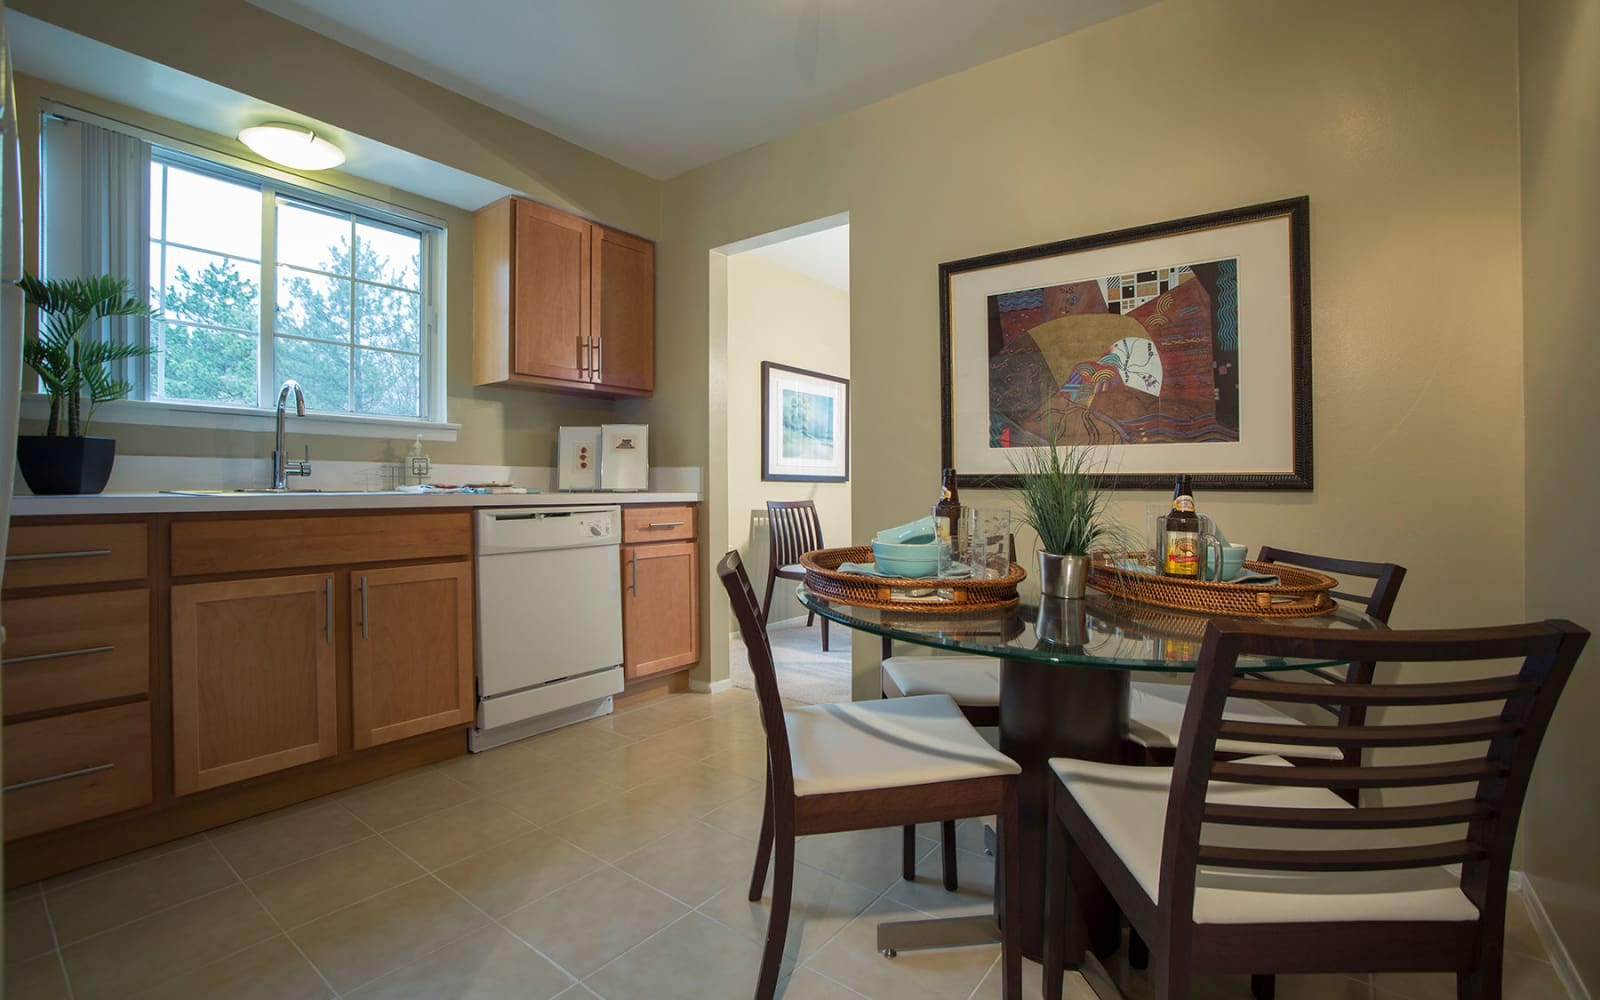 Model kitchen and dining room at Aldingbrooke in West Bloomfield, Michigan